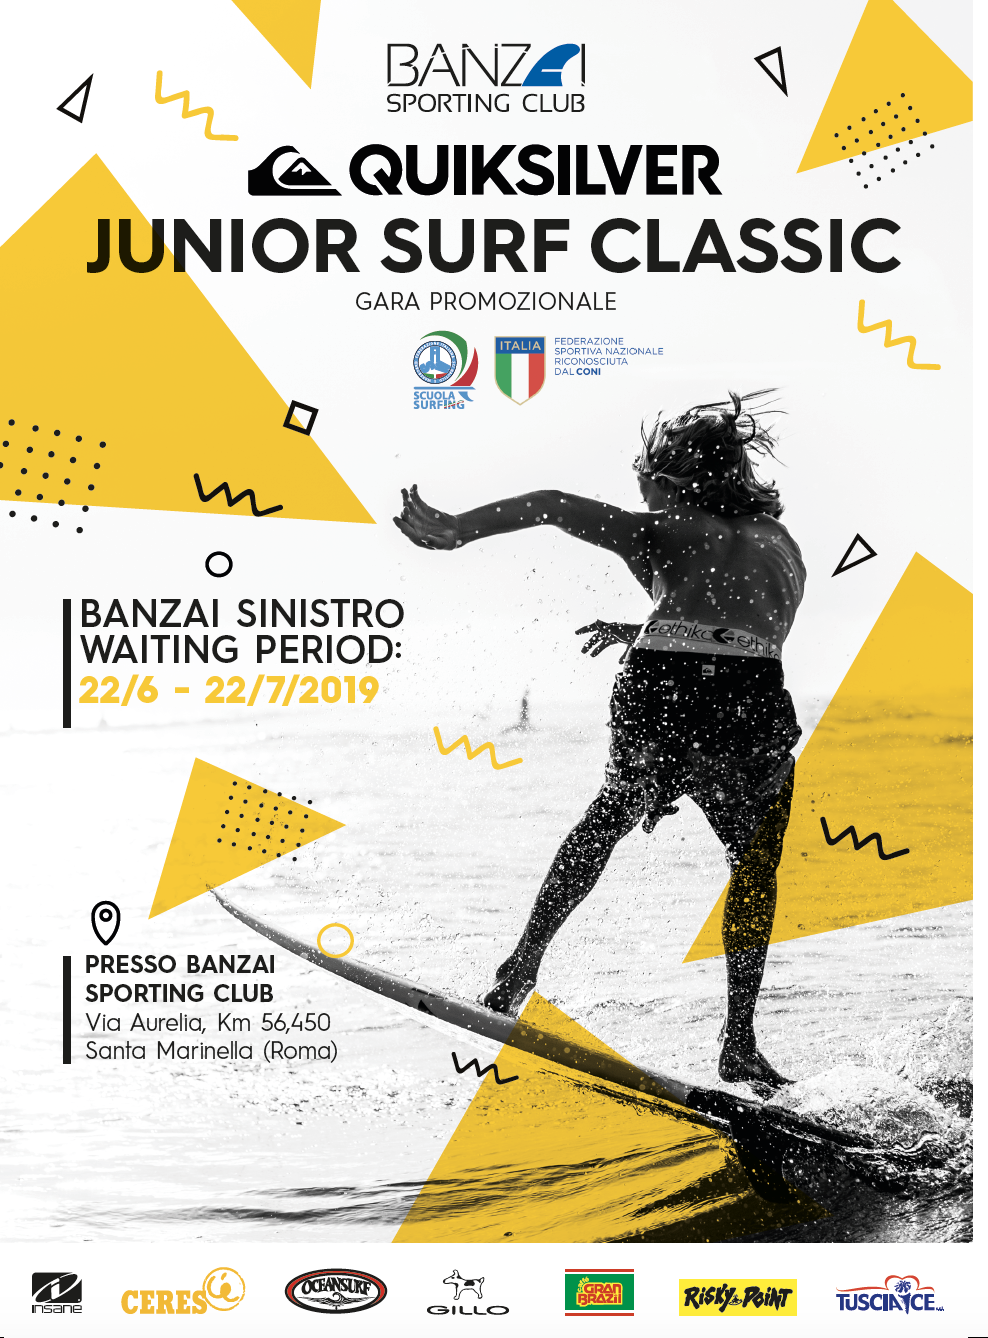 Quicksilver Junior Surf classic banzai 2019